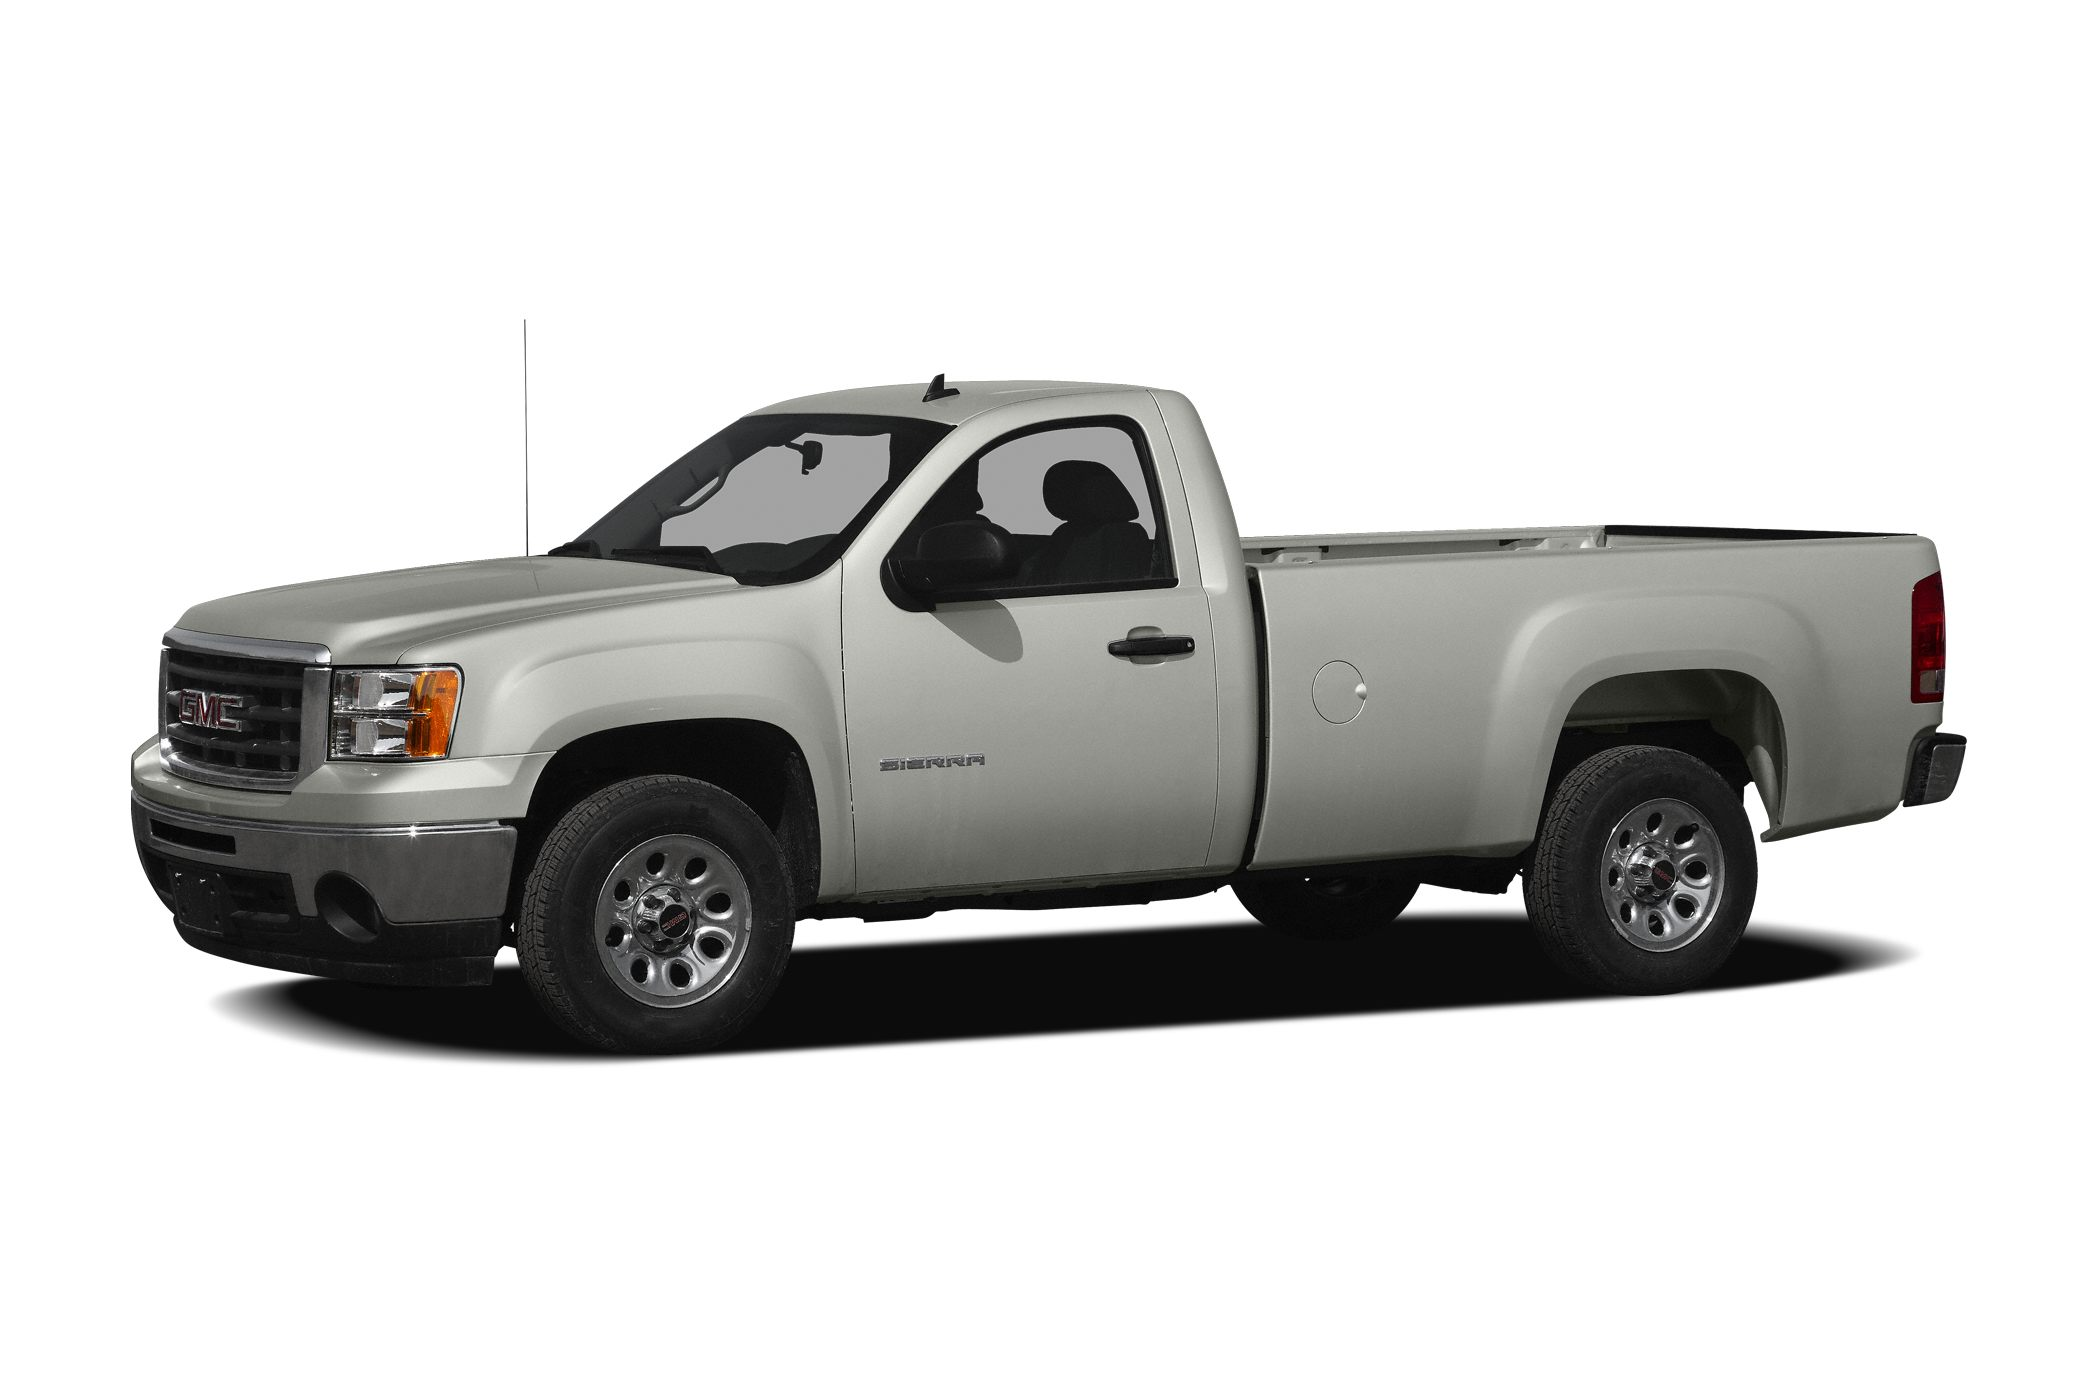 2009 GMC Sierra 1500 Work Truck Regular Cab Pickup for sale in Wausau for $12,999 with 78,062 miles